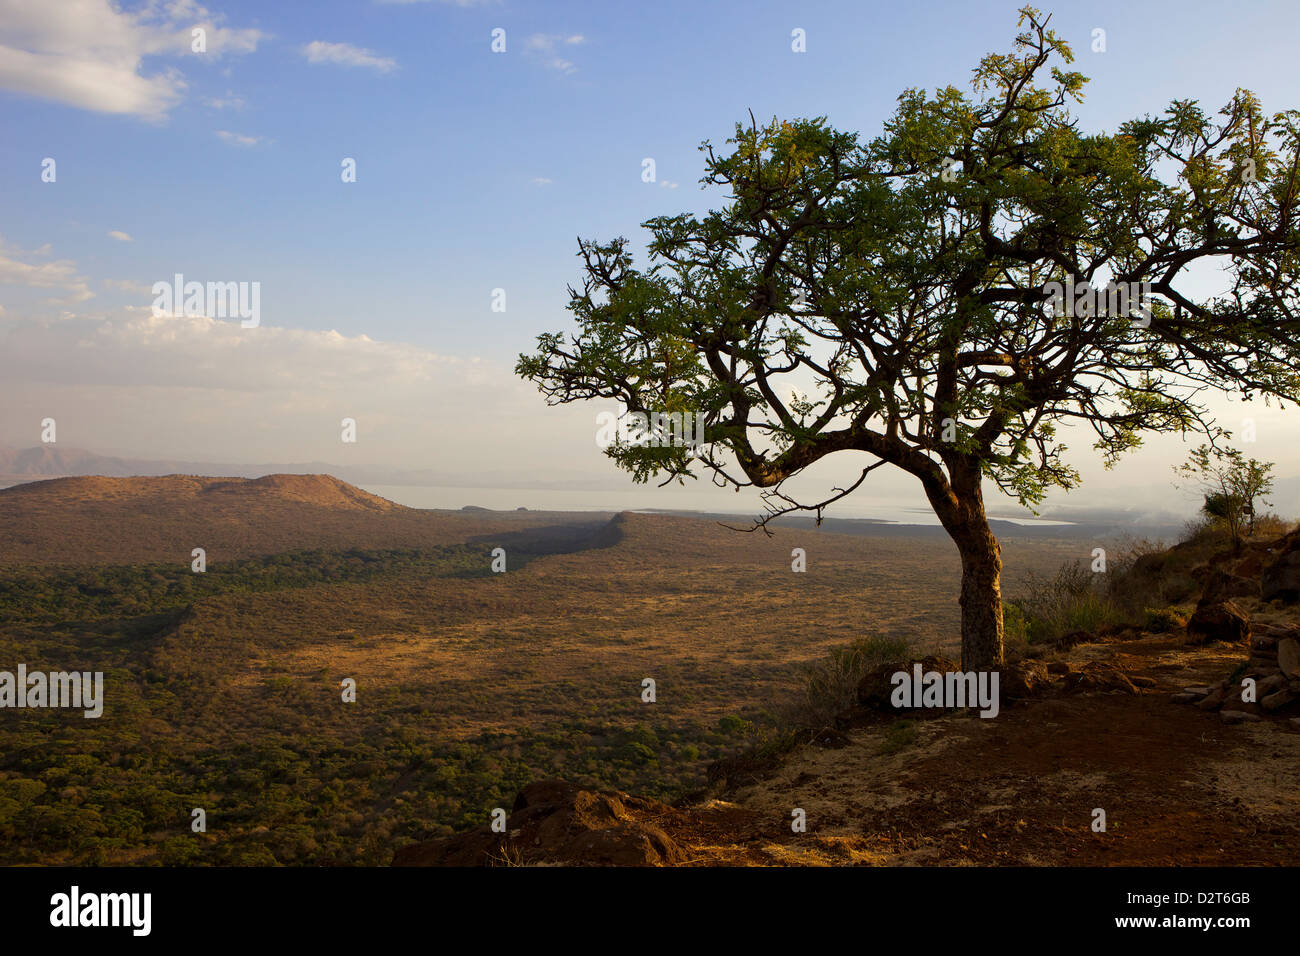 Nechisar National Park, Arba Minch (Arba Migie), Rift Valley region, Ethiopia, Africa Stock Photo